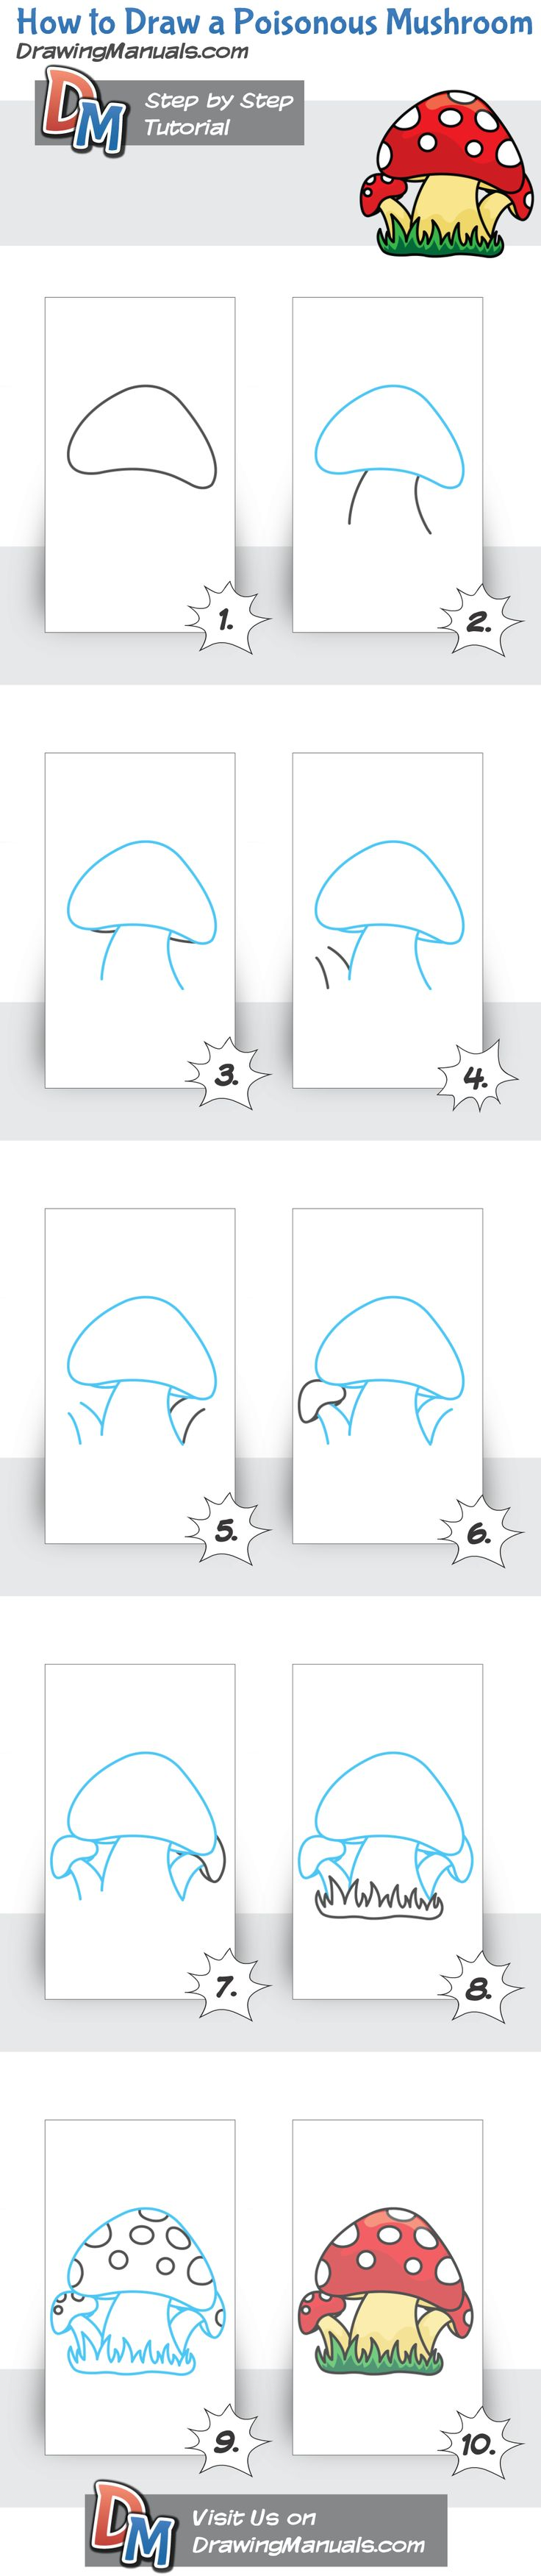 How to Draw a Poisonous Mushroom, easy and detailed step-by-step cartoon drawing tutorial. http://drawingmanuals.com